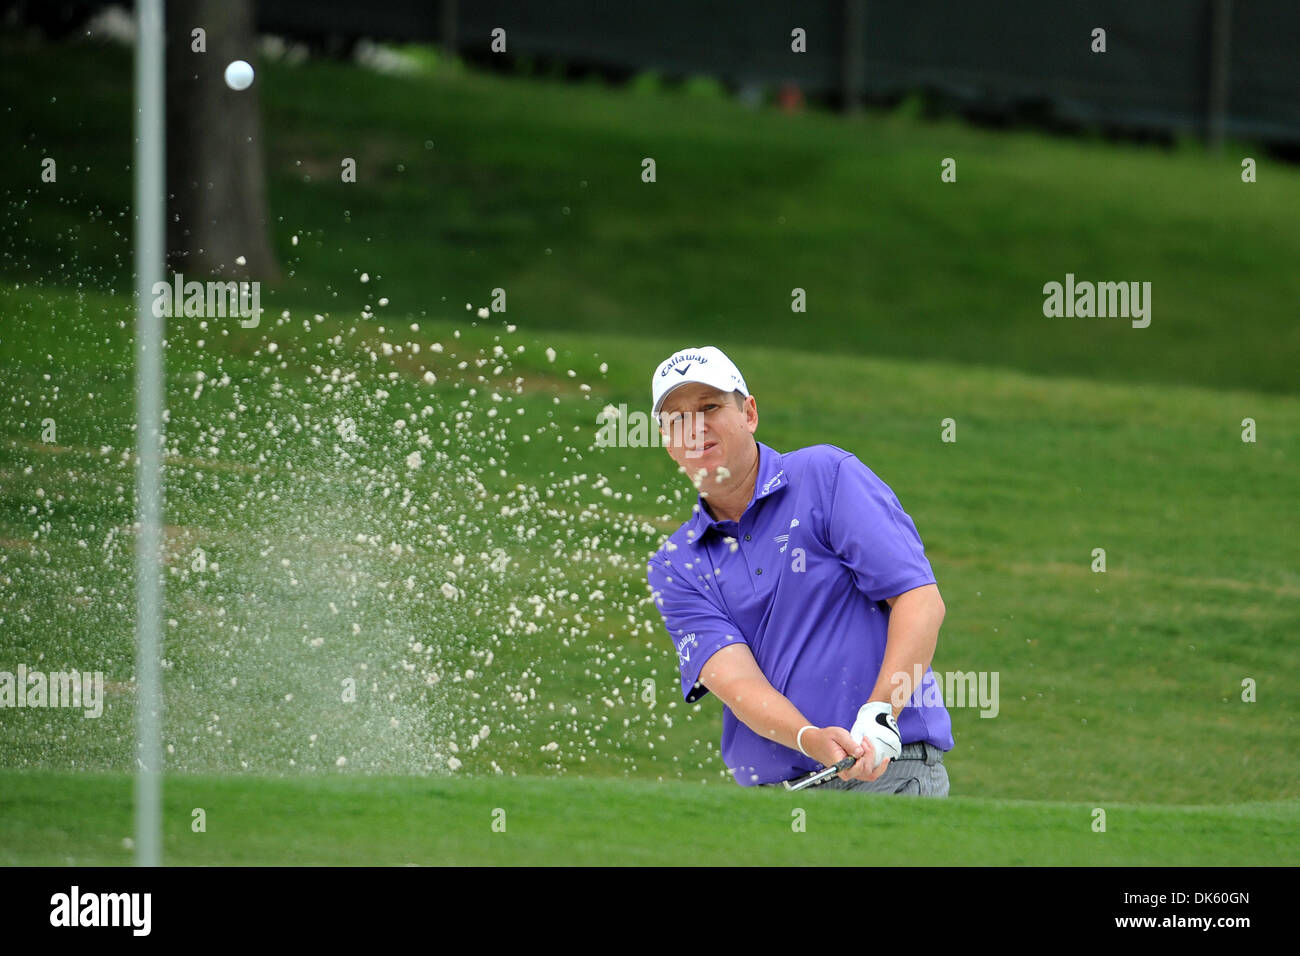 May 18, 2011 - Fort Worth, TX, USA - J.J. Henry chips the ball out of the bunker during the Pro-Am Day of the Crowne Plaza Invitational at Colonial played at Colonial Country Club in Fort Worth, TX. (Credit Image: © Patrick Green/Southcreek Global/ZUMAPRESS.com) - Stock Image